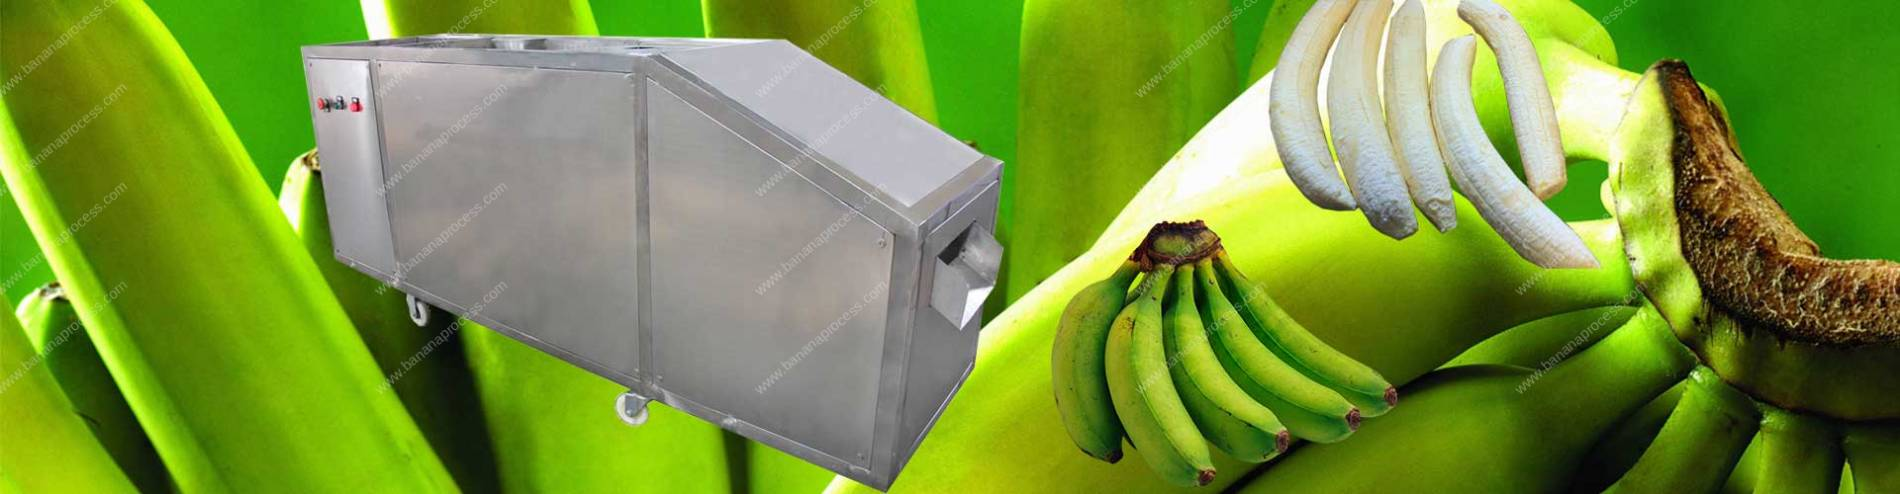 Bannaer01-Automatic-Green-Unripe-Banana-Peeling-Machine-Manufacture-for-Sale